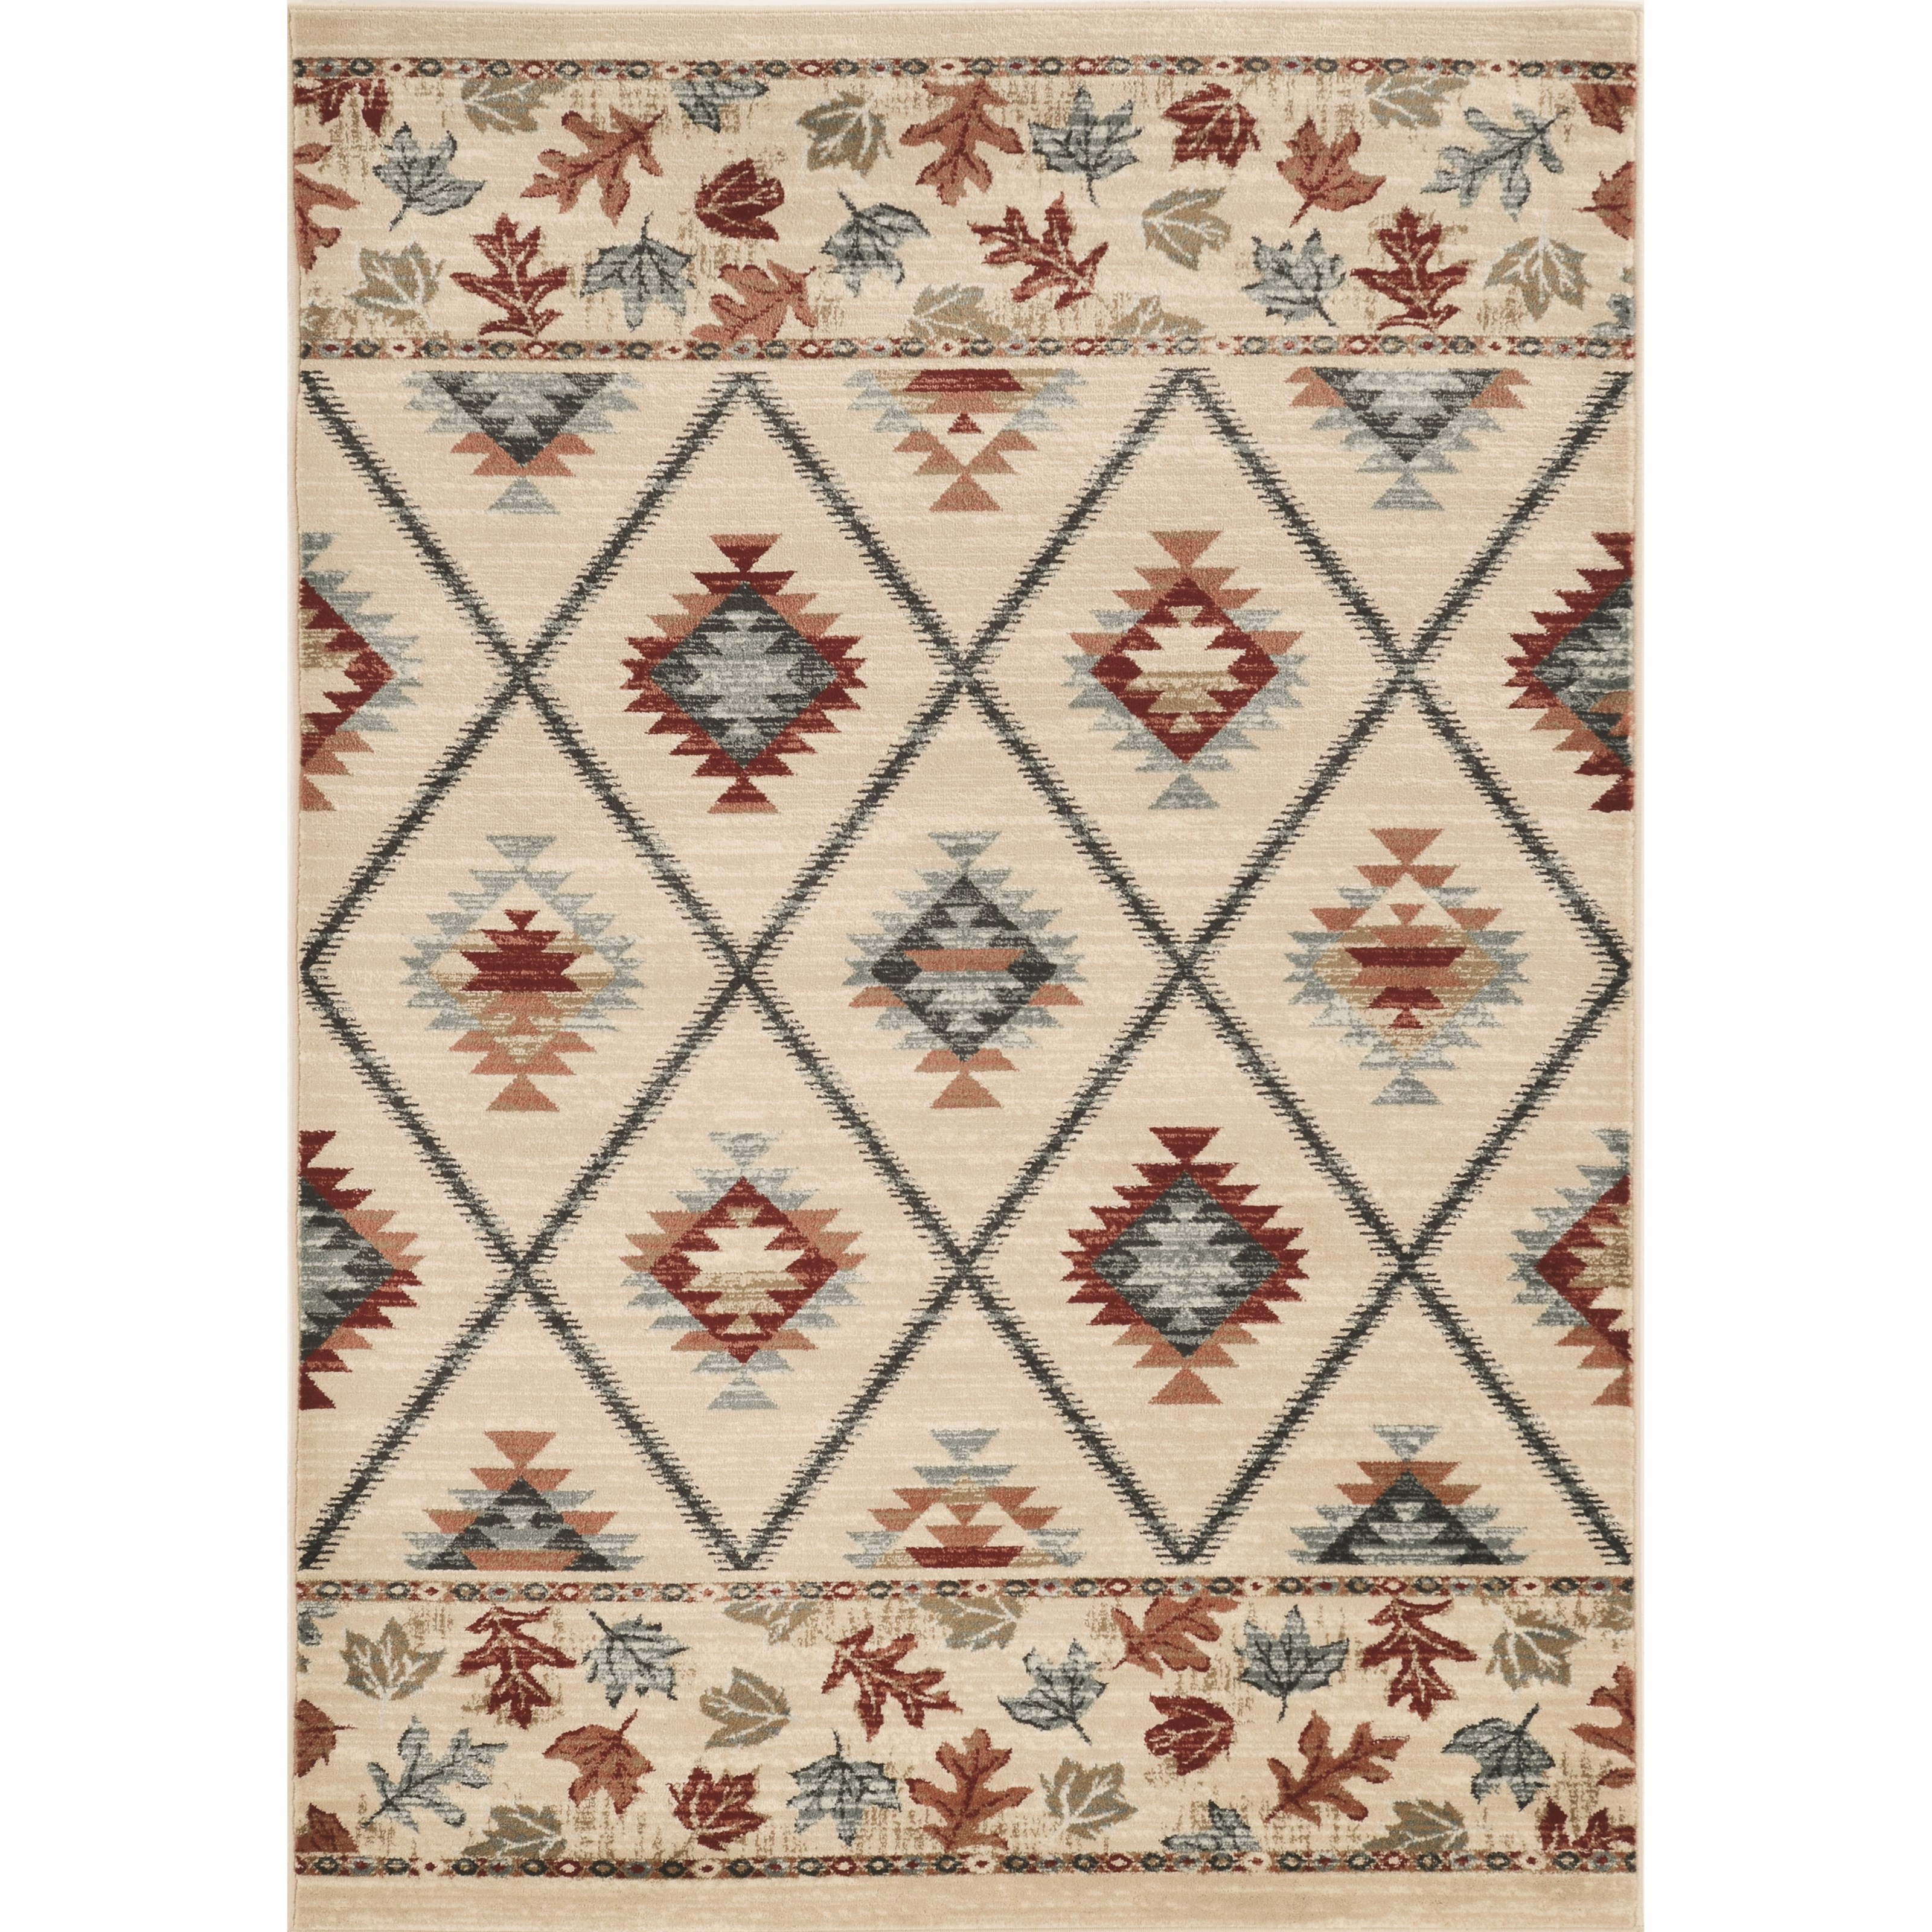 Chester 9' x 12' Ivory Harvest Rug by Kas at Darvin Furniture